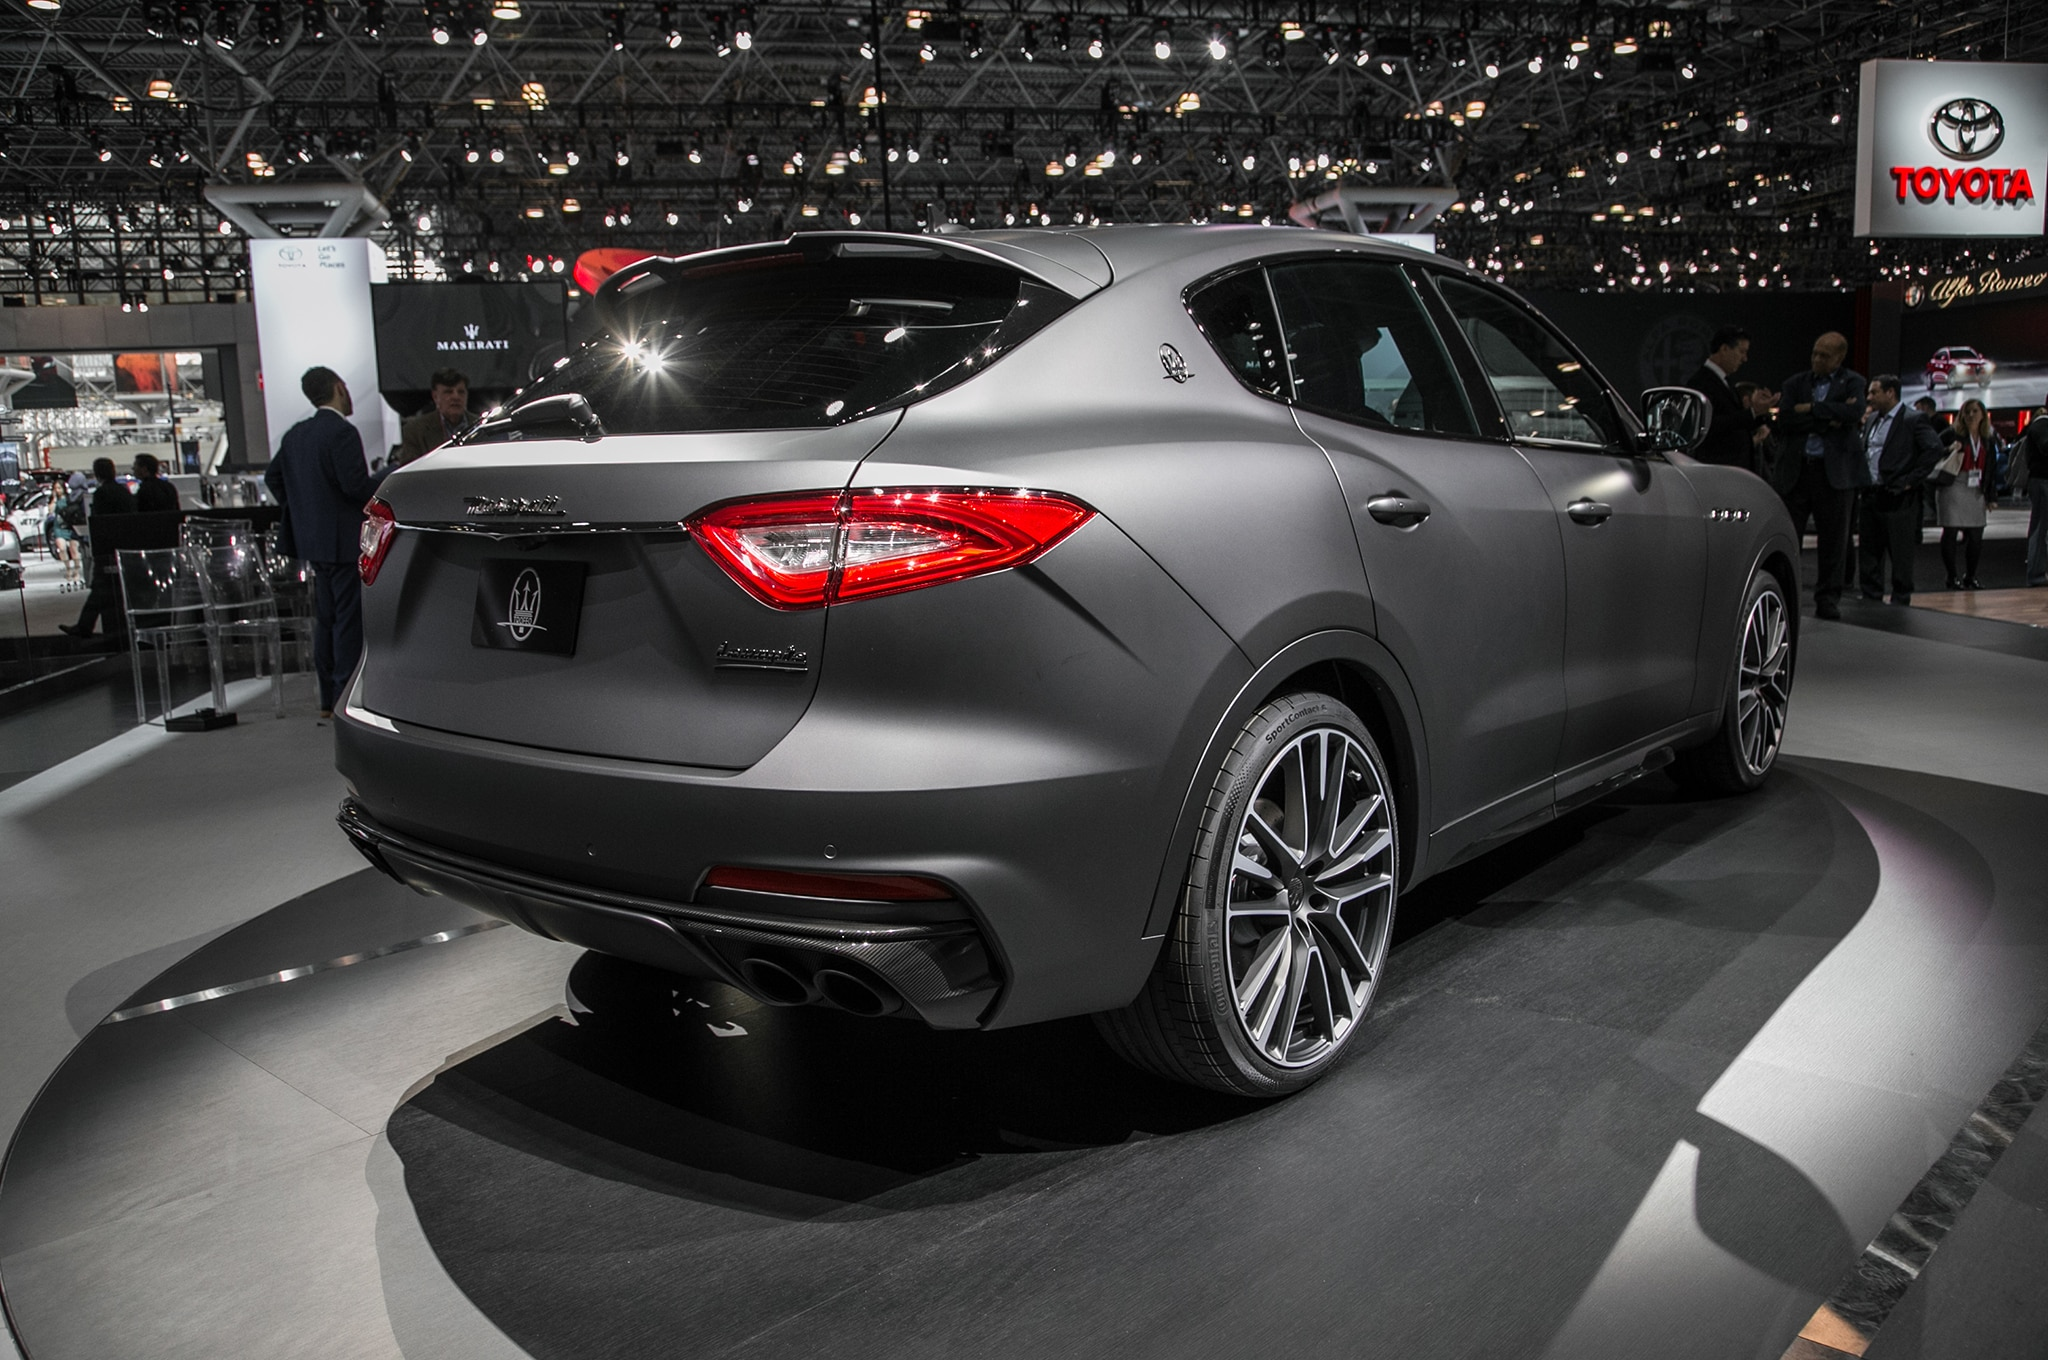 2019 maserati levante trofeo is one of the quickest maseratis yet automobile magazine. Black Bedroom Furniture Sets. Home Design Ideas